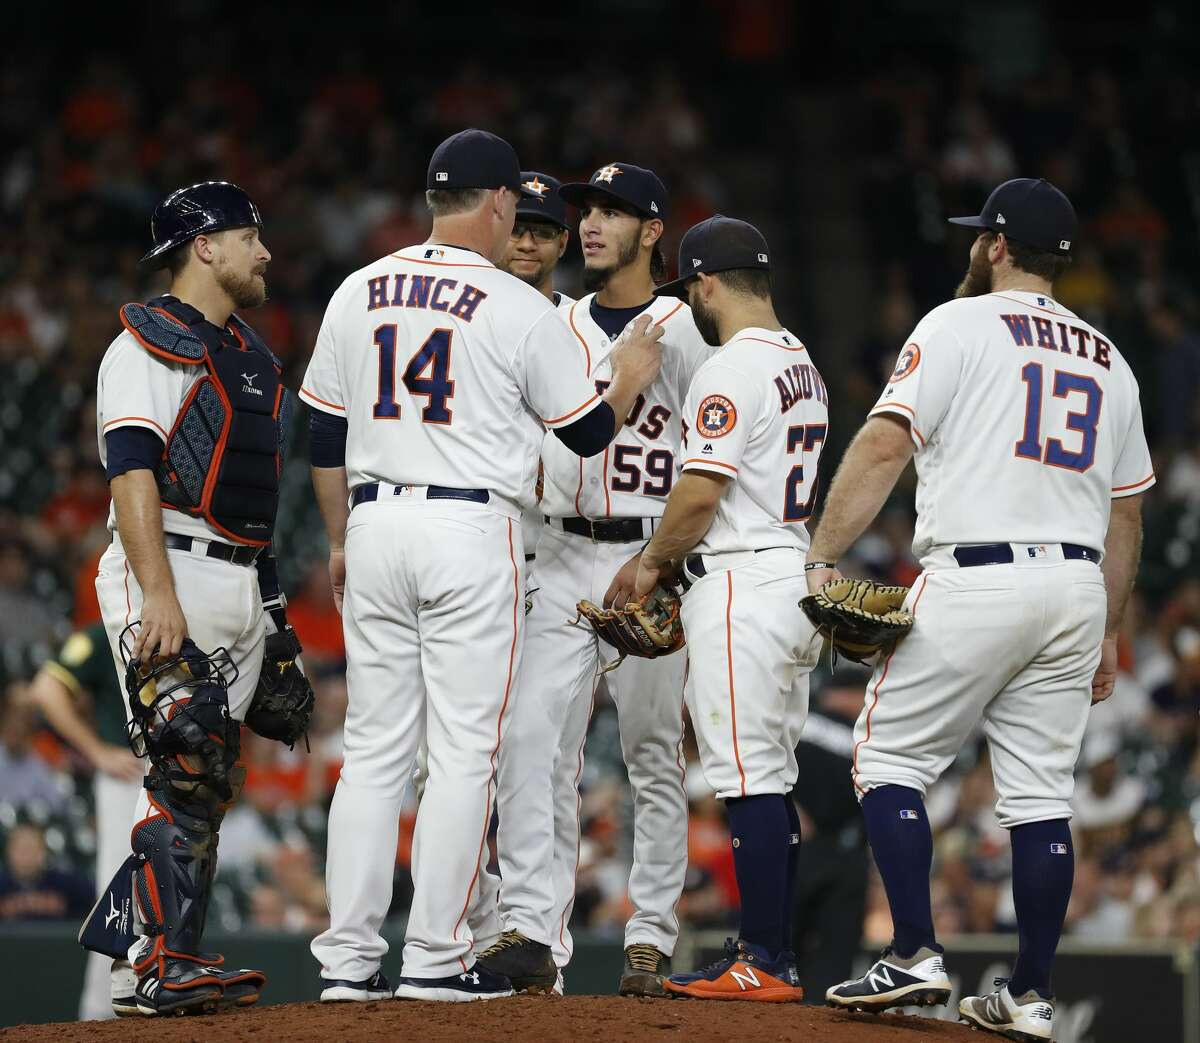 Houston Astros manager AJ Hinch (14) pulls Cionel Perez during the ninth inning of an MLB game at Minute Maid Park, Wednesday, July 11, 2018, in Houston. ( Karen Warren / Houston Chronicle )